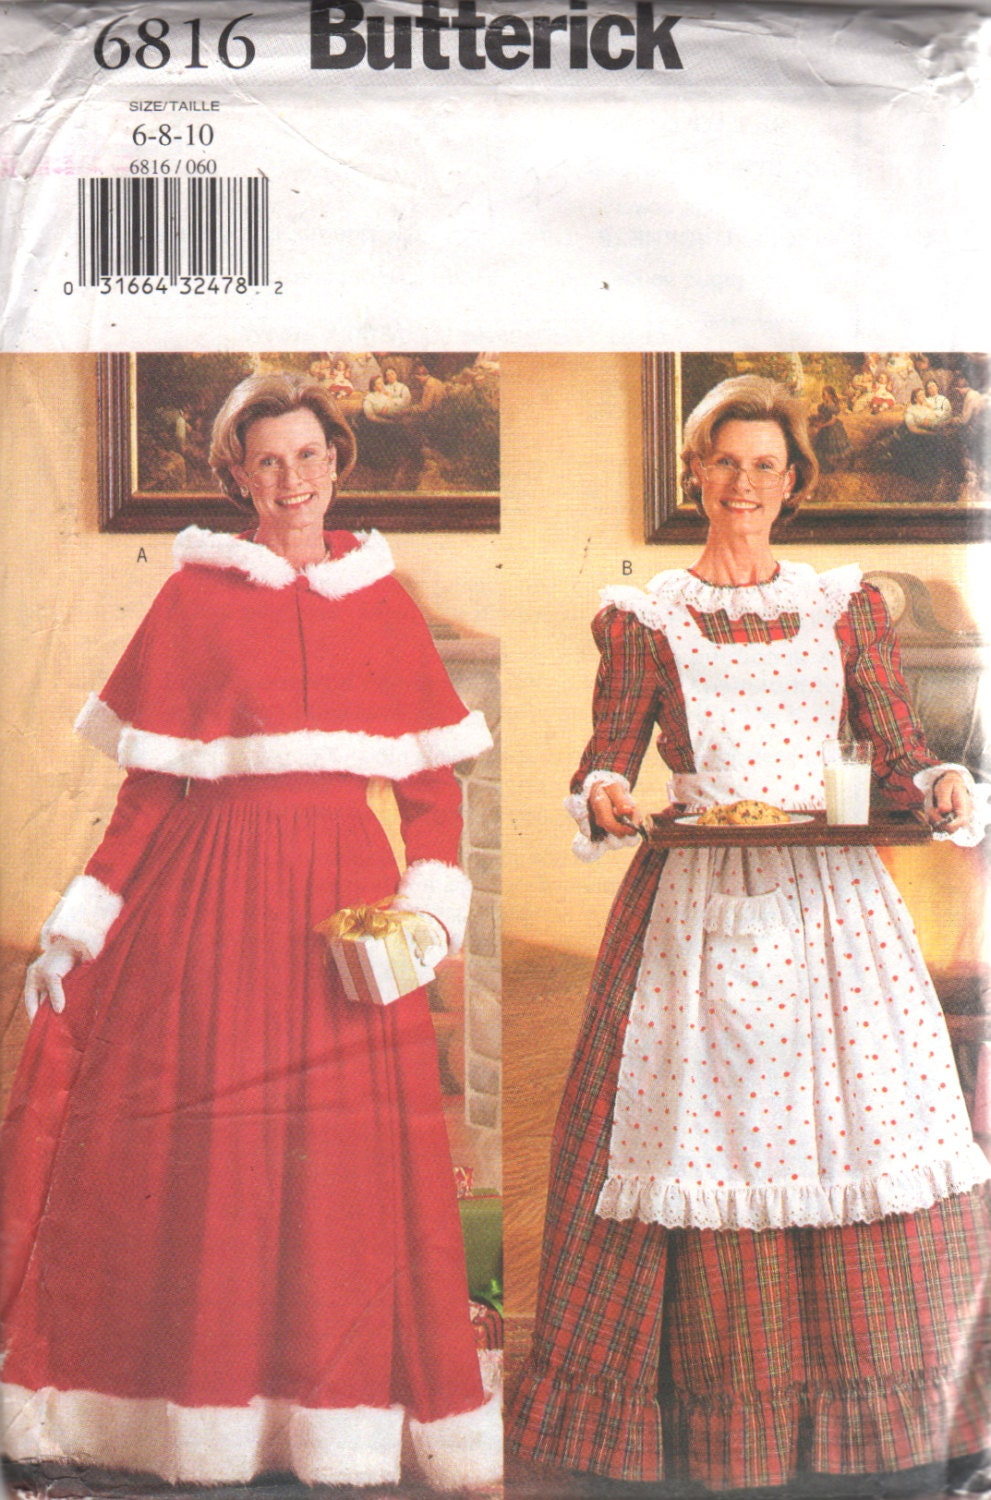 Butterick 6816 Misses Mrs Claus Costume Pattern Maxi Dress